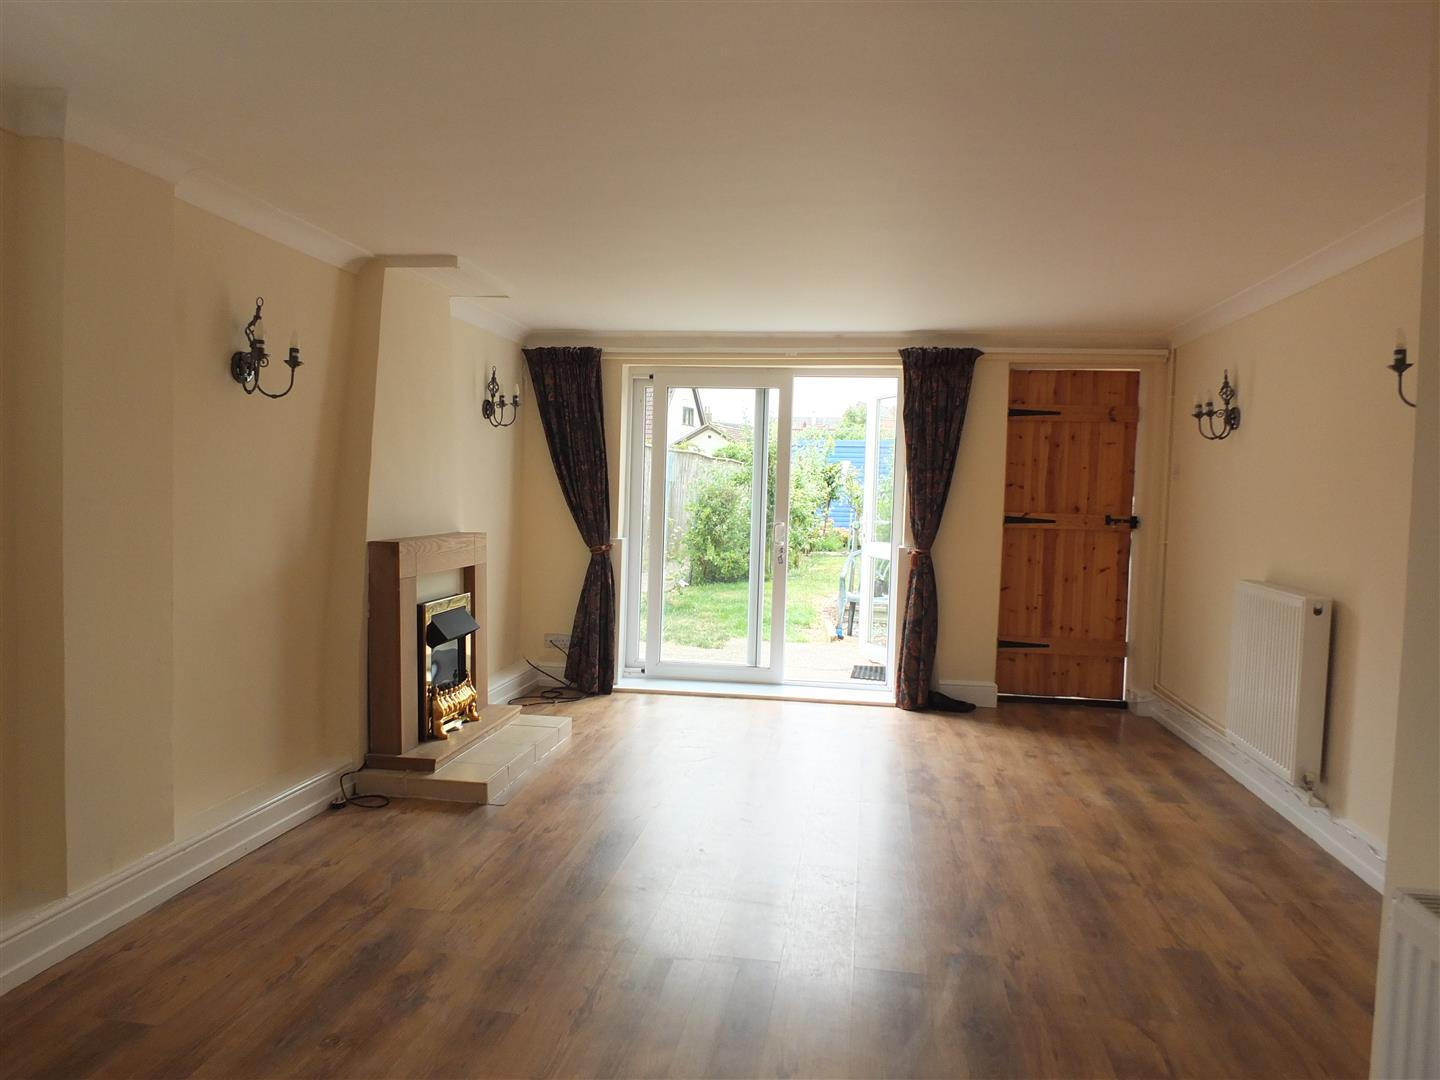 2 bed house to rent in Long Sutton Spalding, PE12 9DH  - Property Image 2